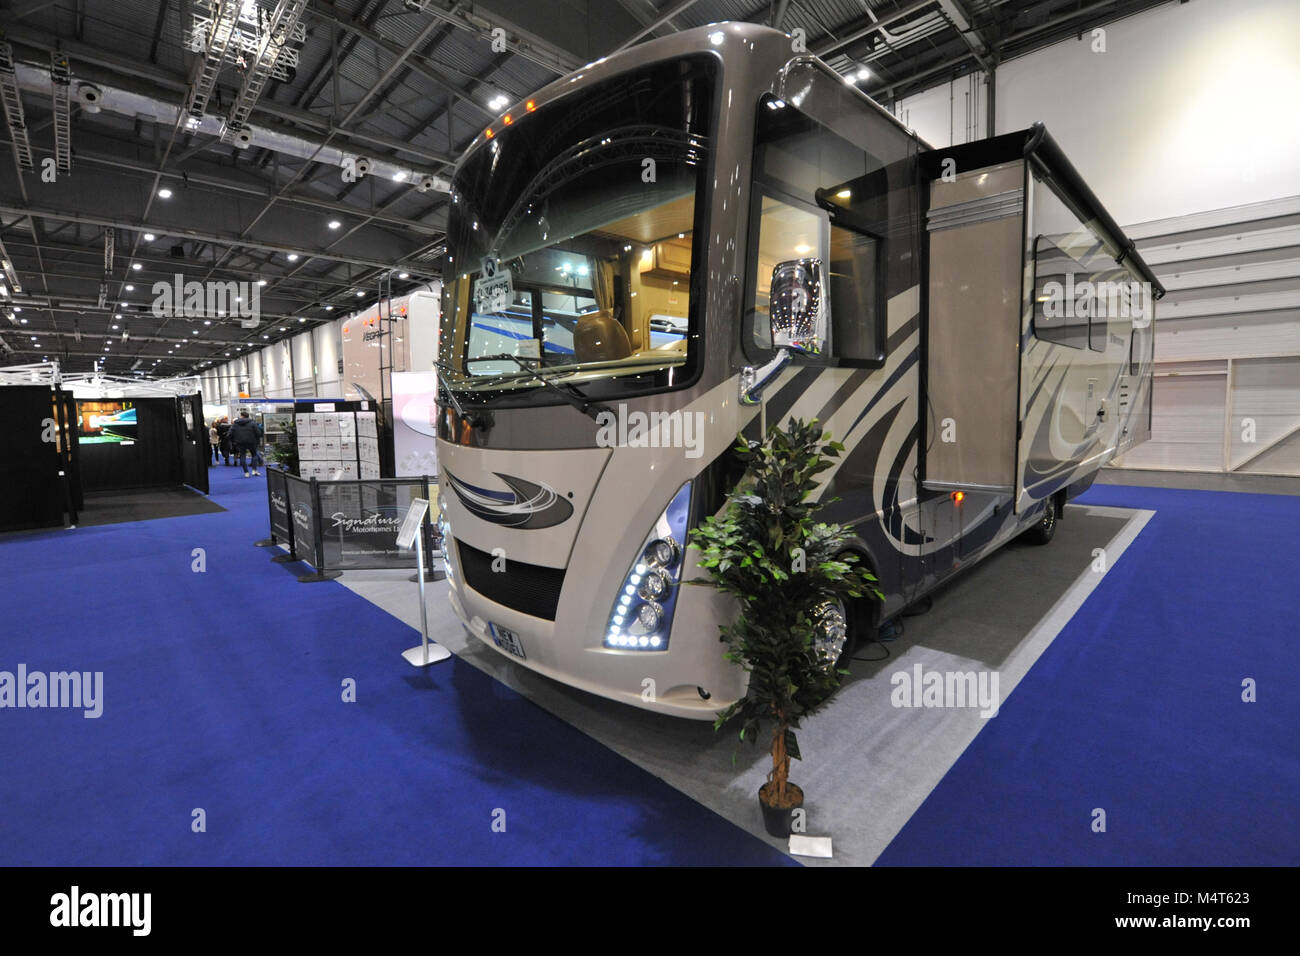 A Thor Windsport 29m Motorhome on display at the London Classic Car Show which is taking place at ExCel London, - Stock Image